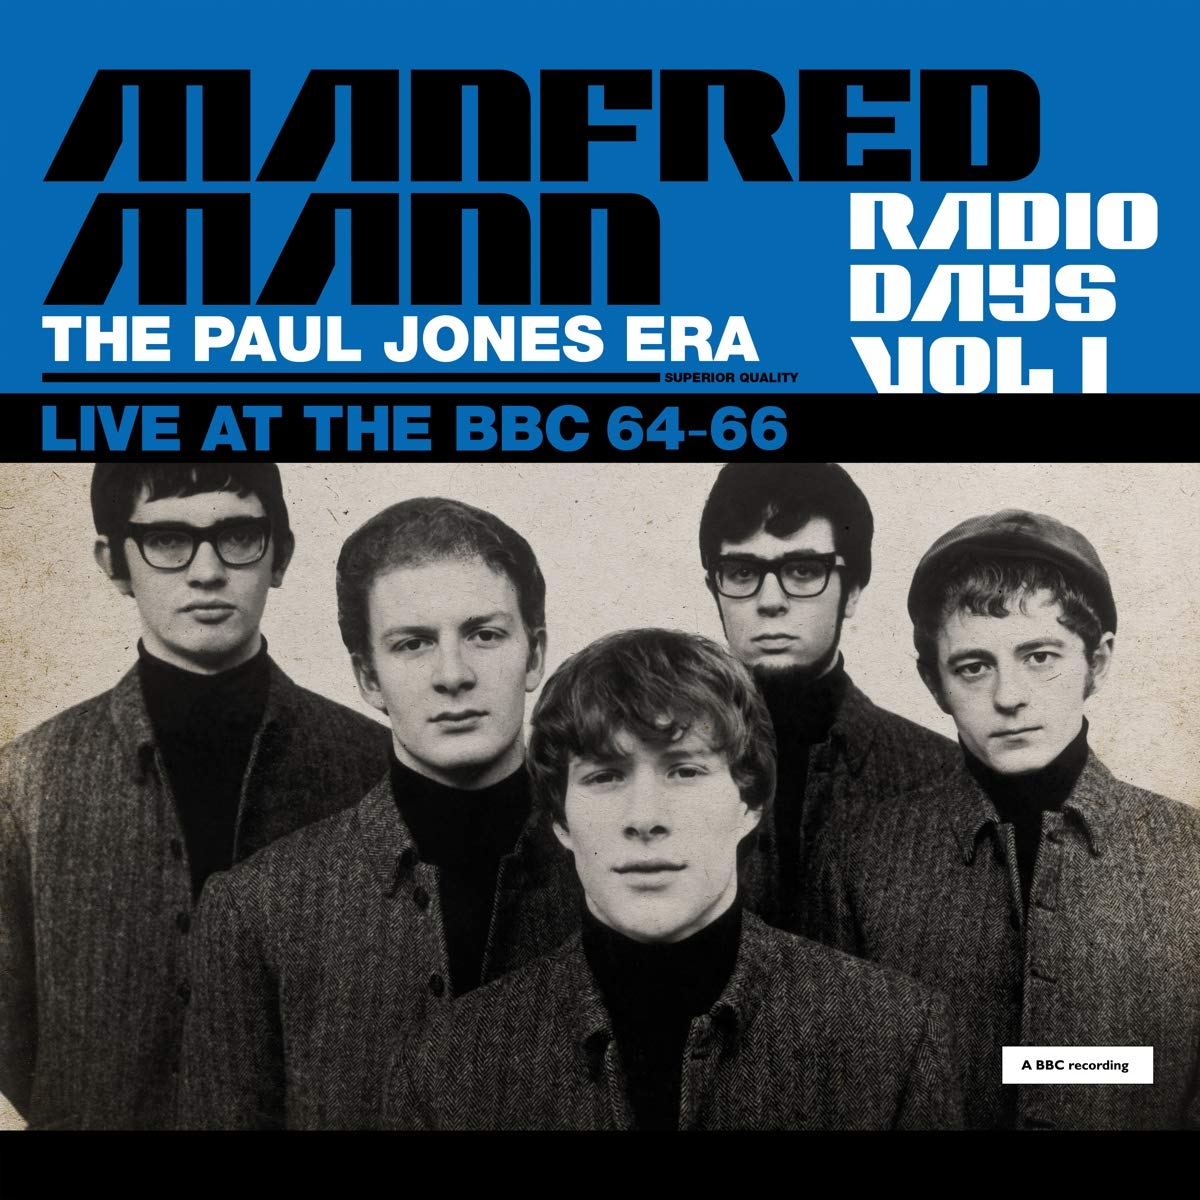 Manfred Mann — Radio Days Vol. 1 - The Paul Jones Era